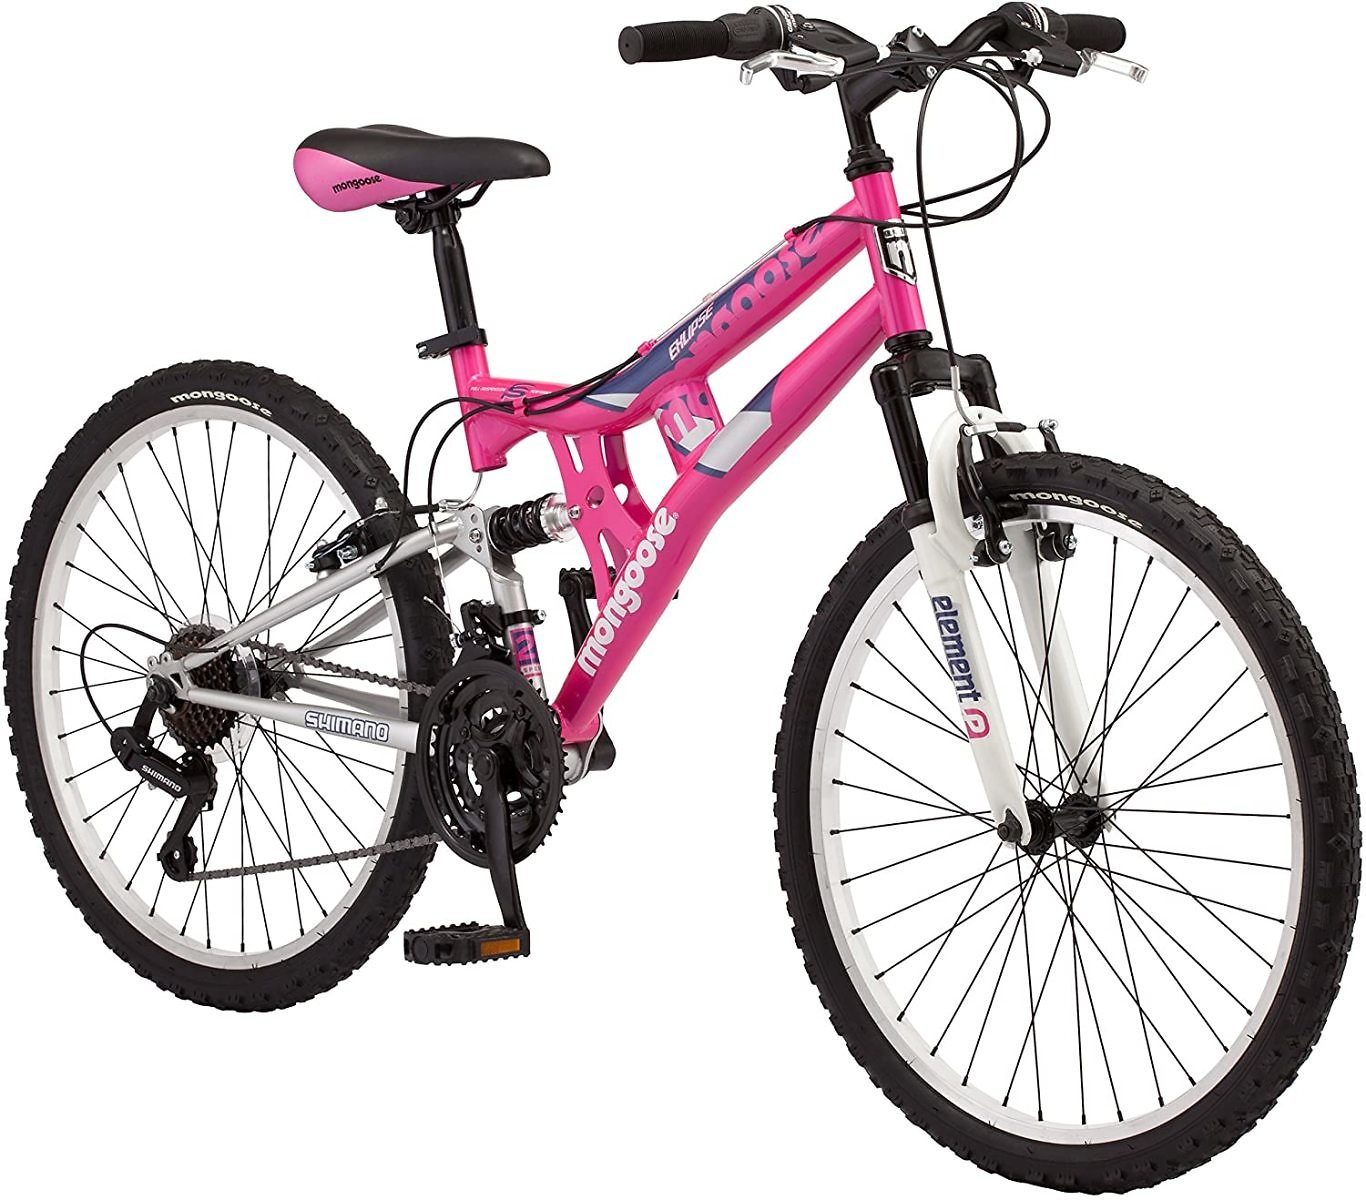 Mongoose Exlipse Full Dual-Suspension Mountain Bike for Kids